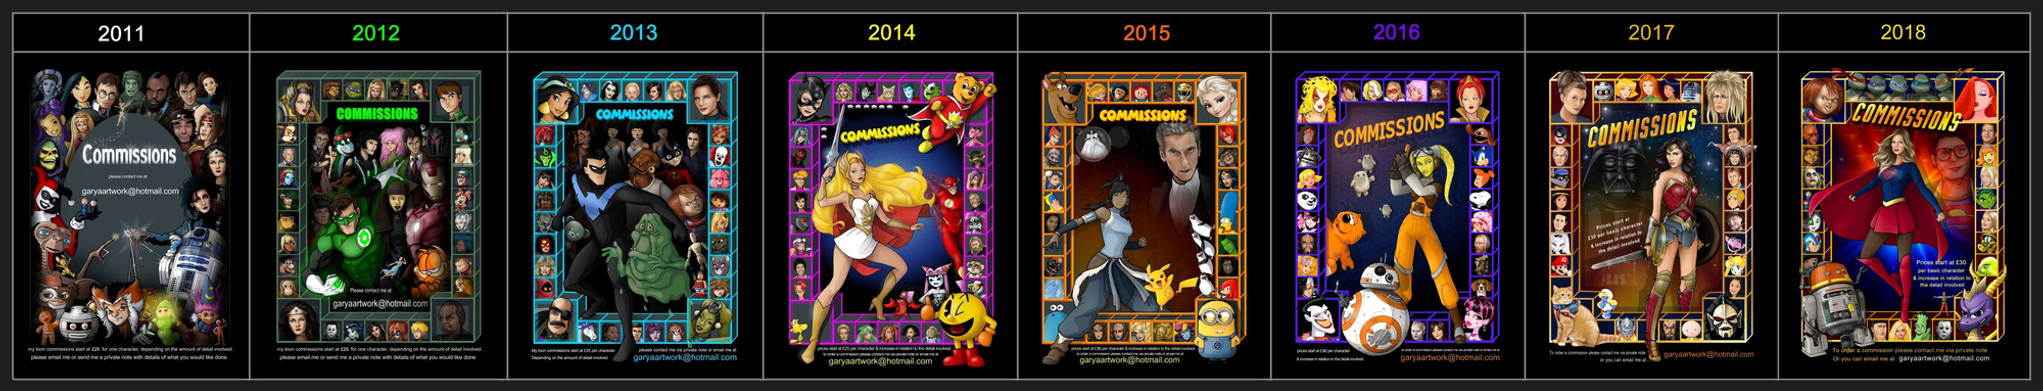 toon commissions 2011 to 2018